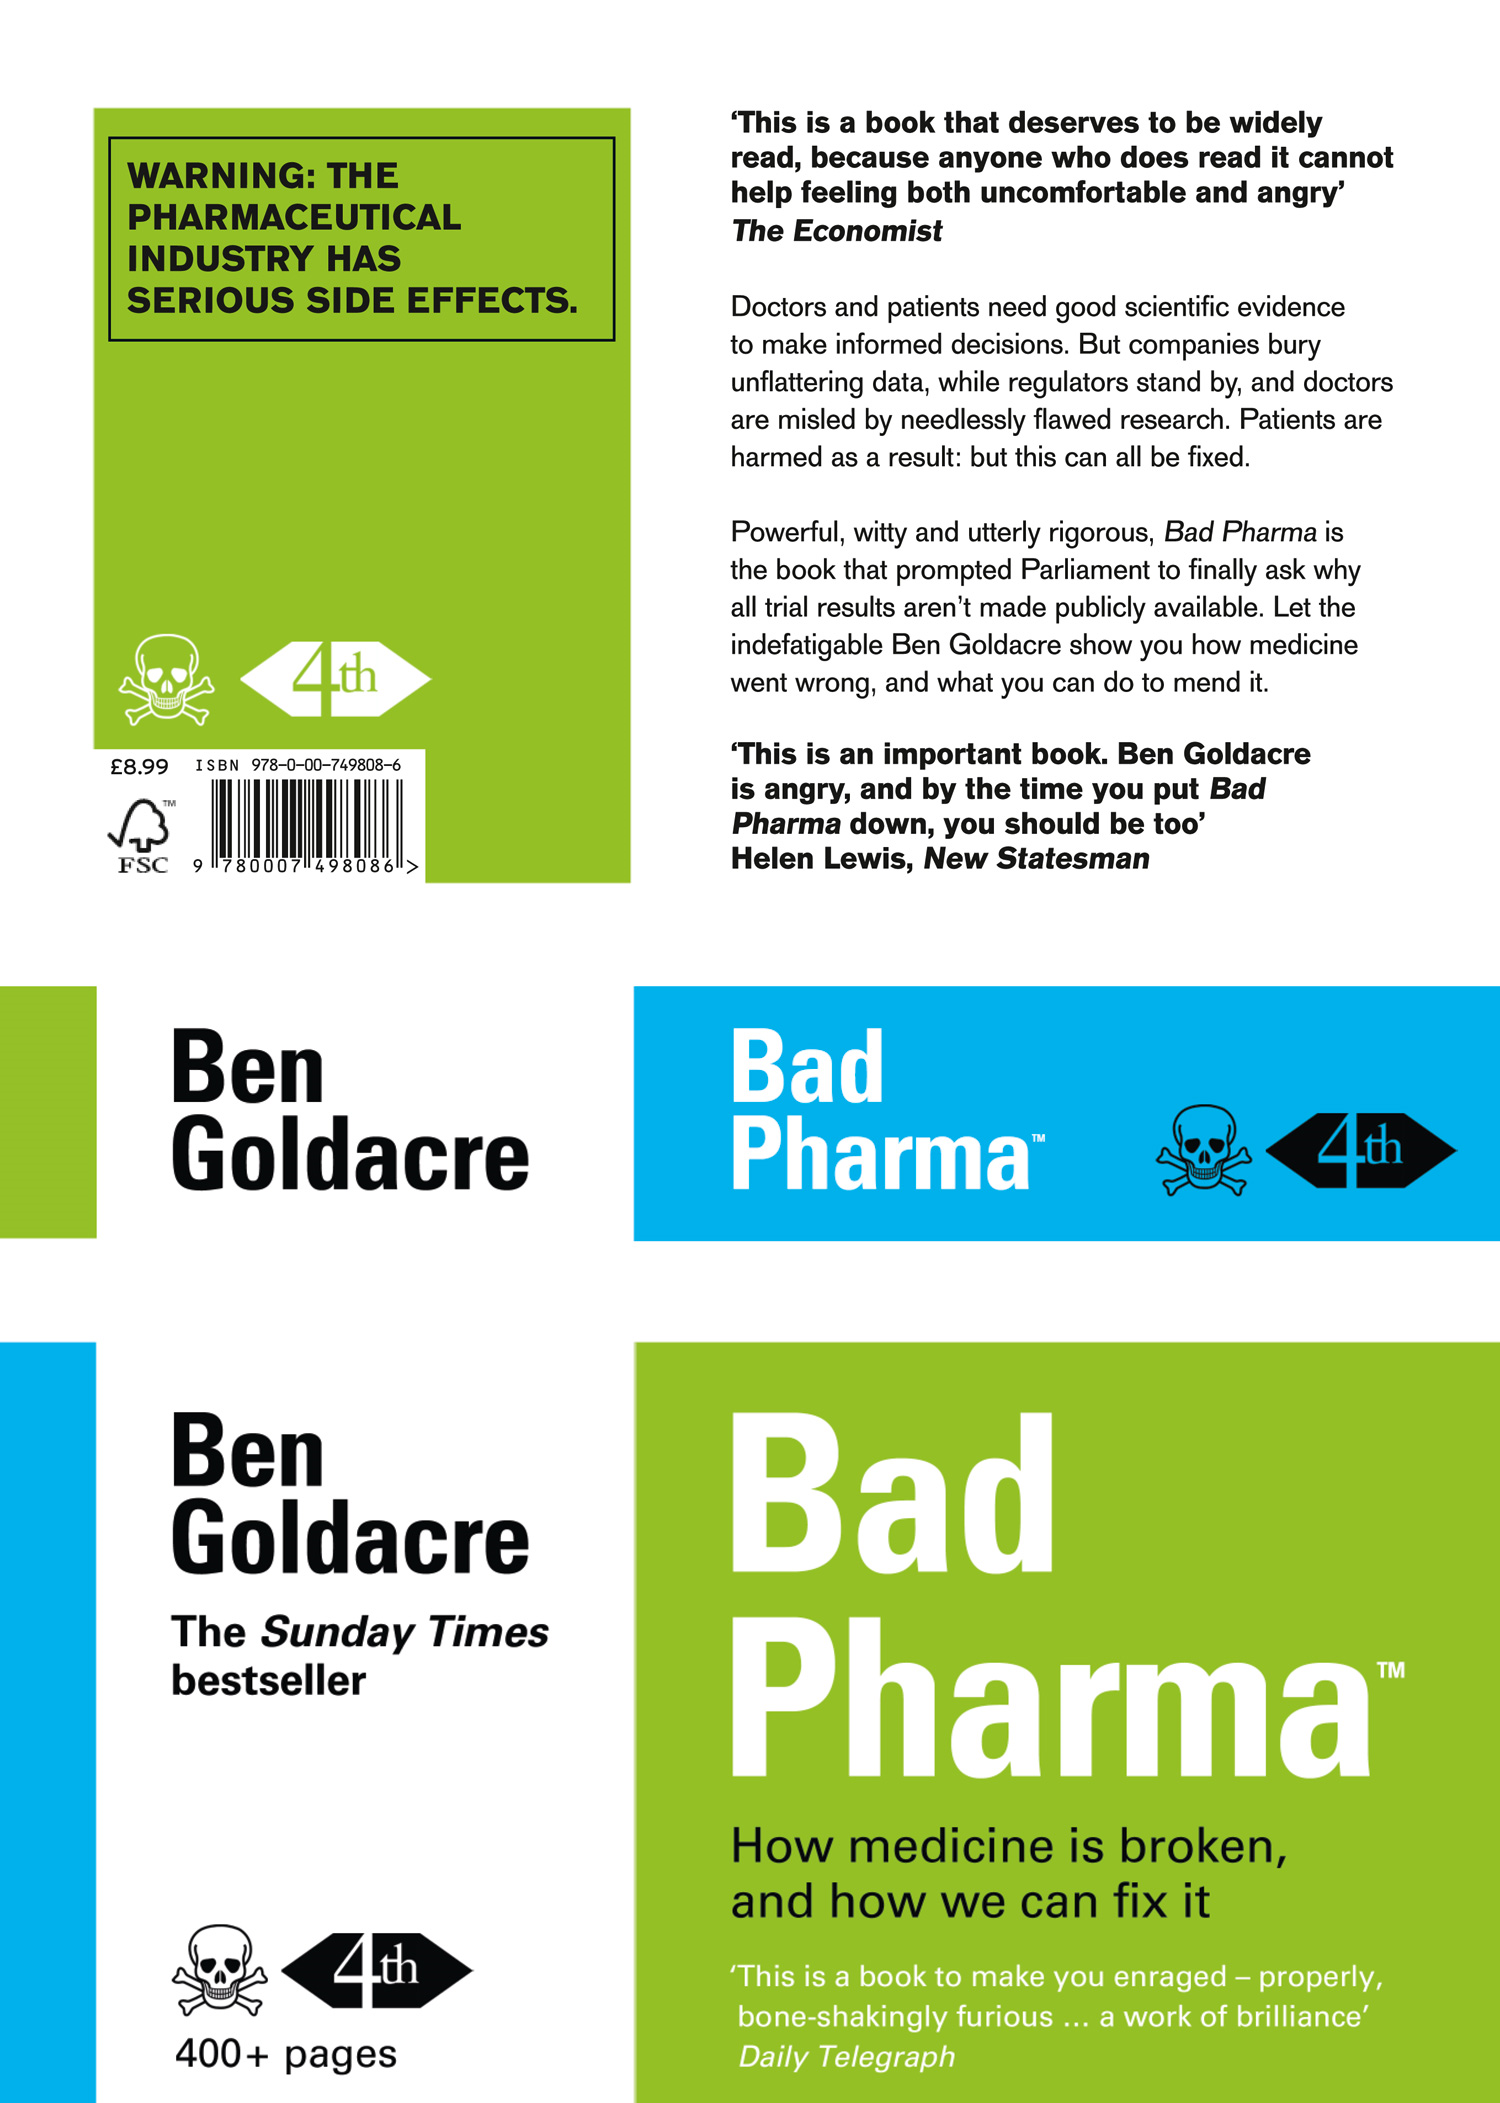 Bad Pharma: How Medicine is Broken,  And How We Can Fix It